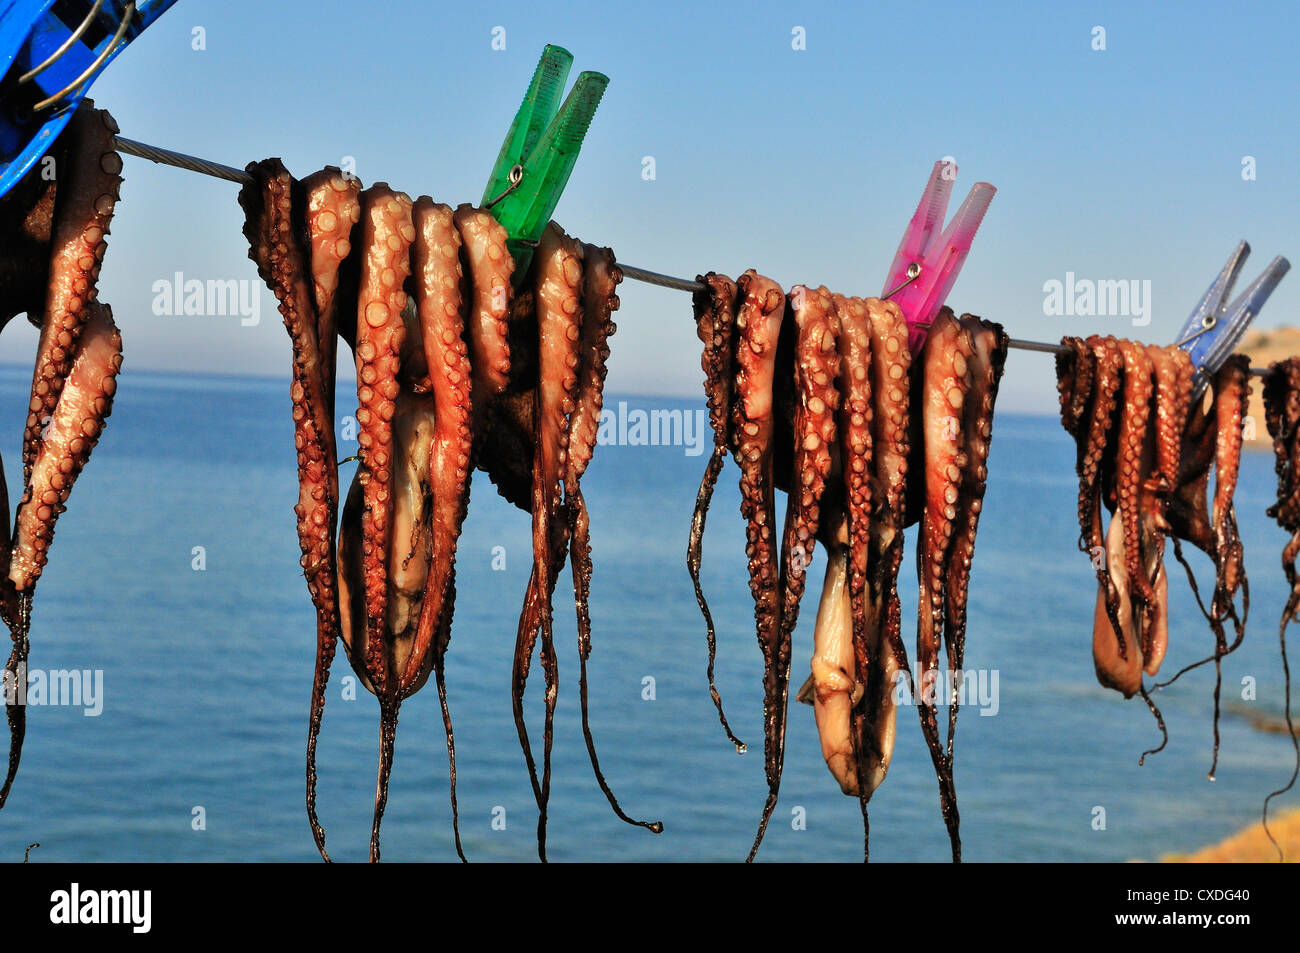 Freshly caught calamari or squid pegged out and drying in the sun on a line outside a taverna in Plaka, near Elouda, - Stock Image